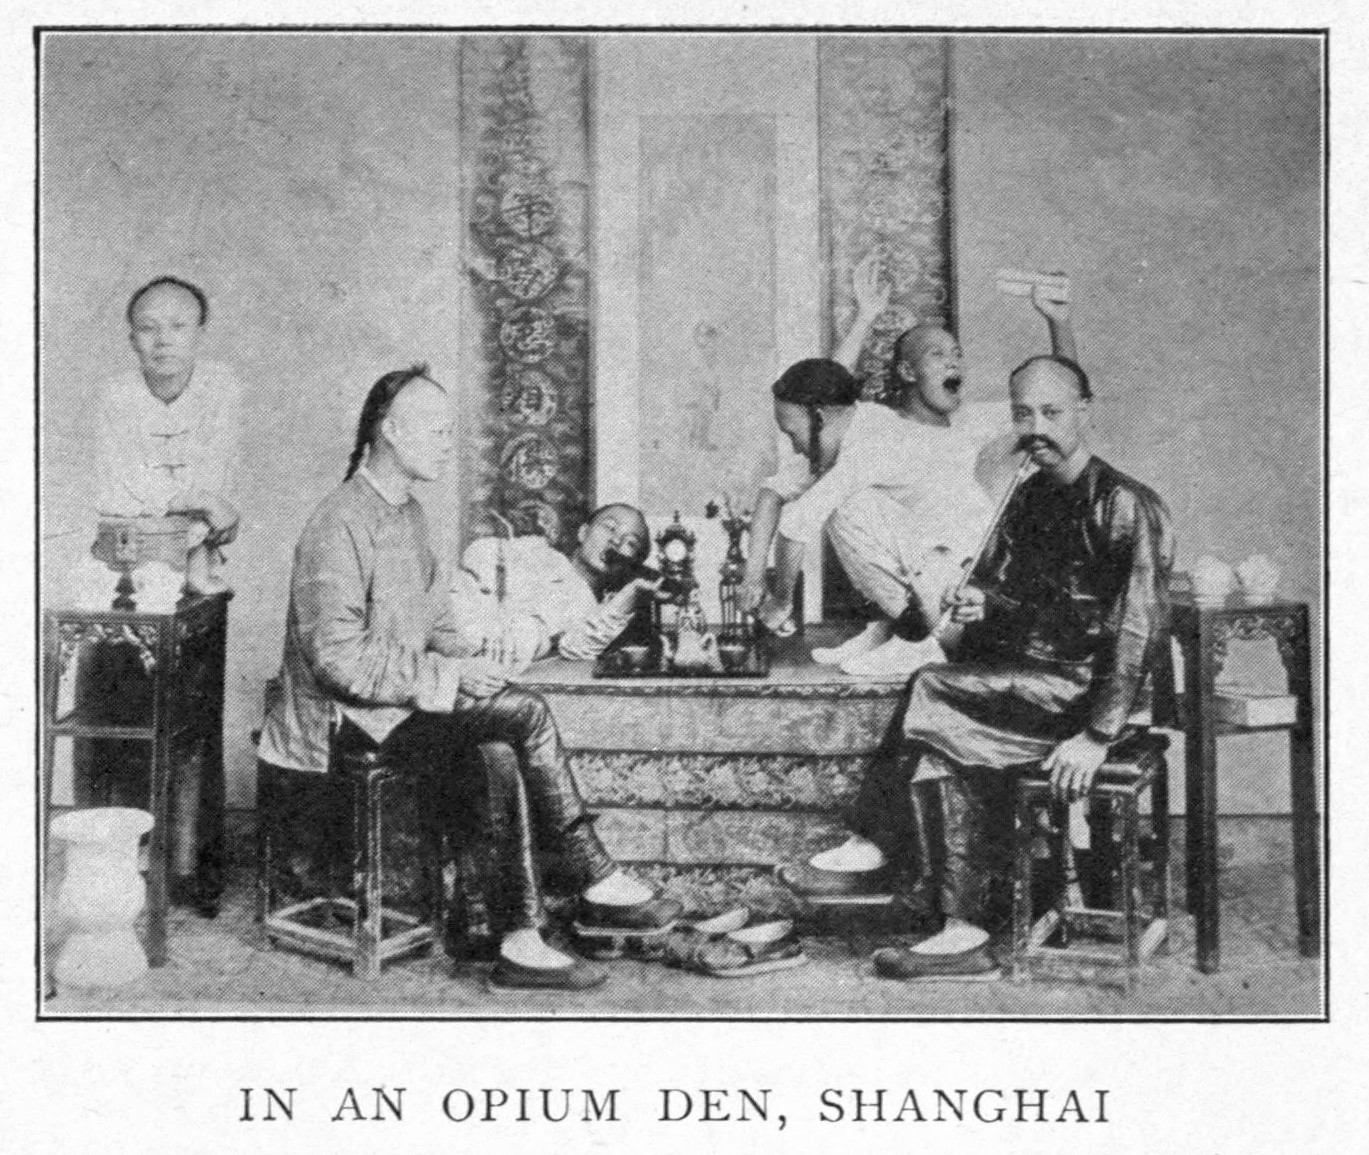 History of opium in China